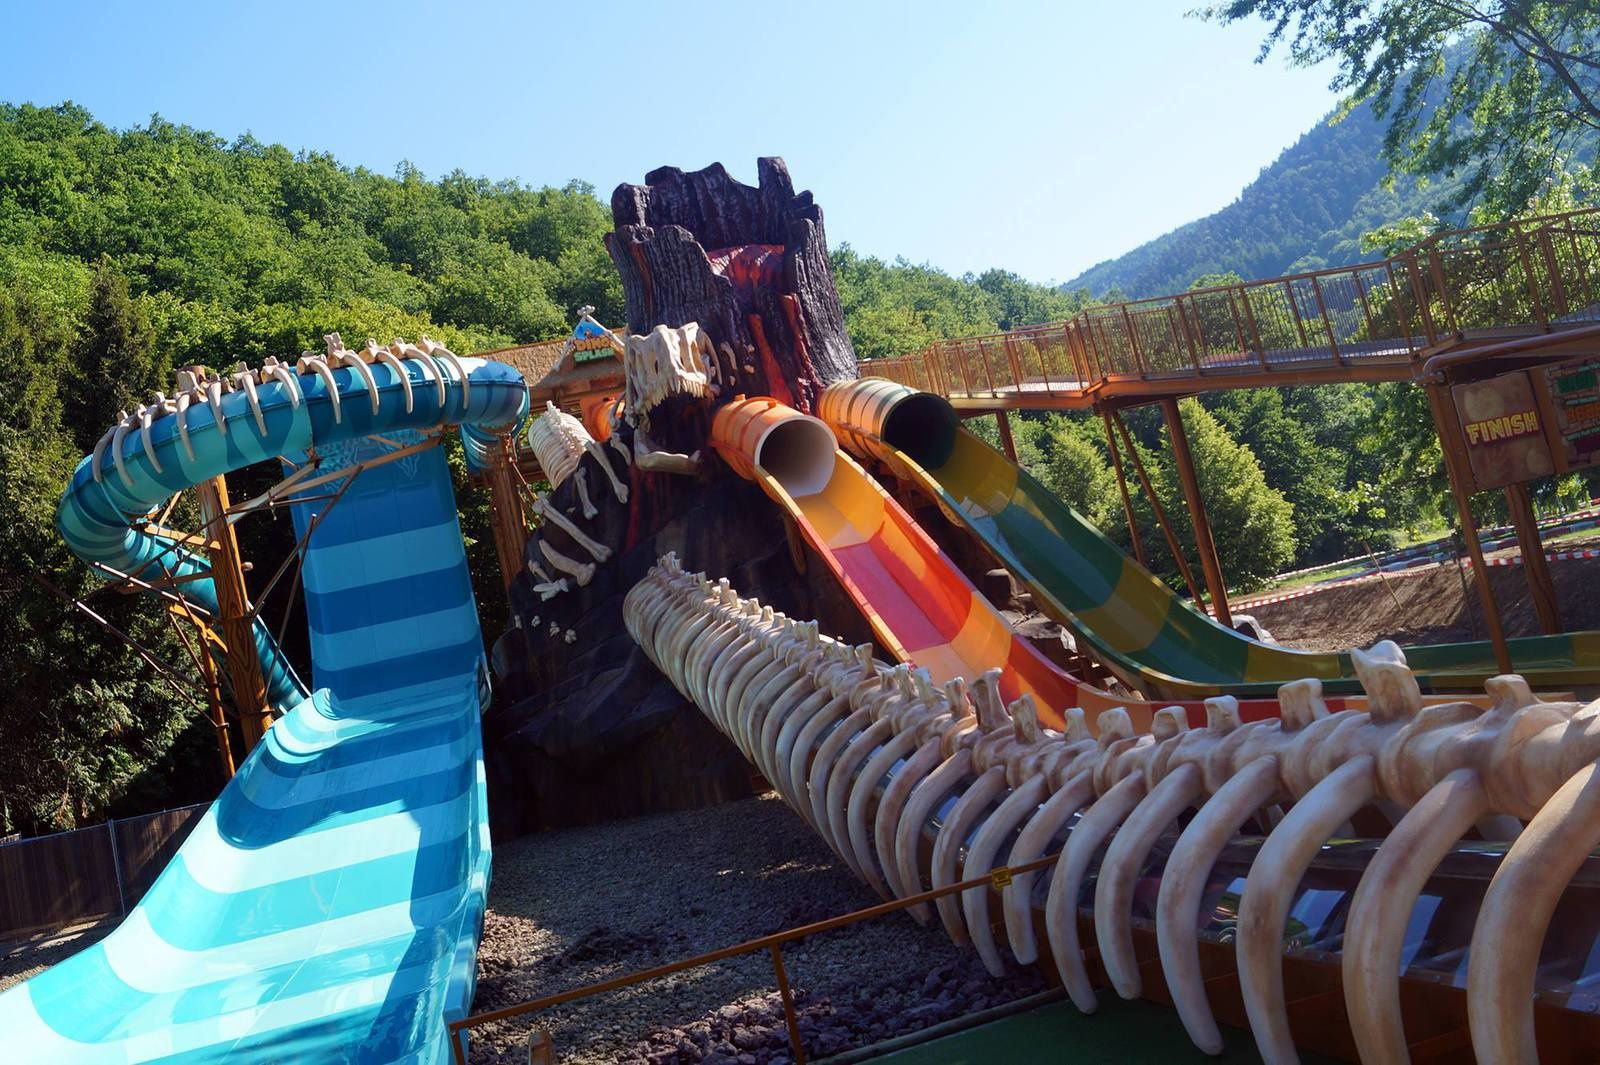 Re: PlopsaCoo 2015: Dino Splash (waterslides)